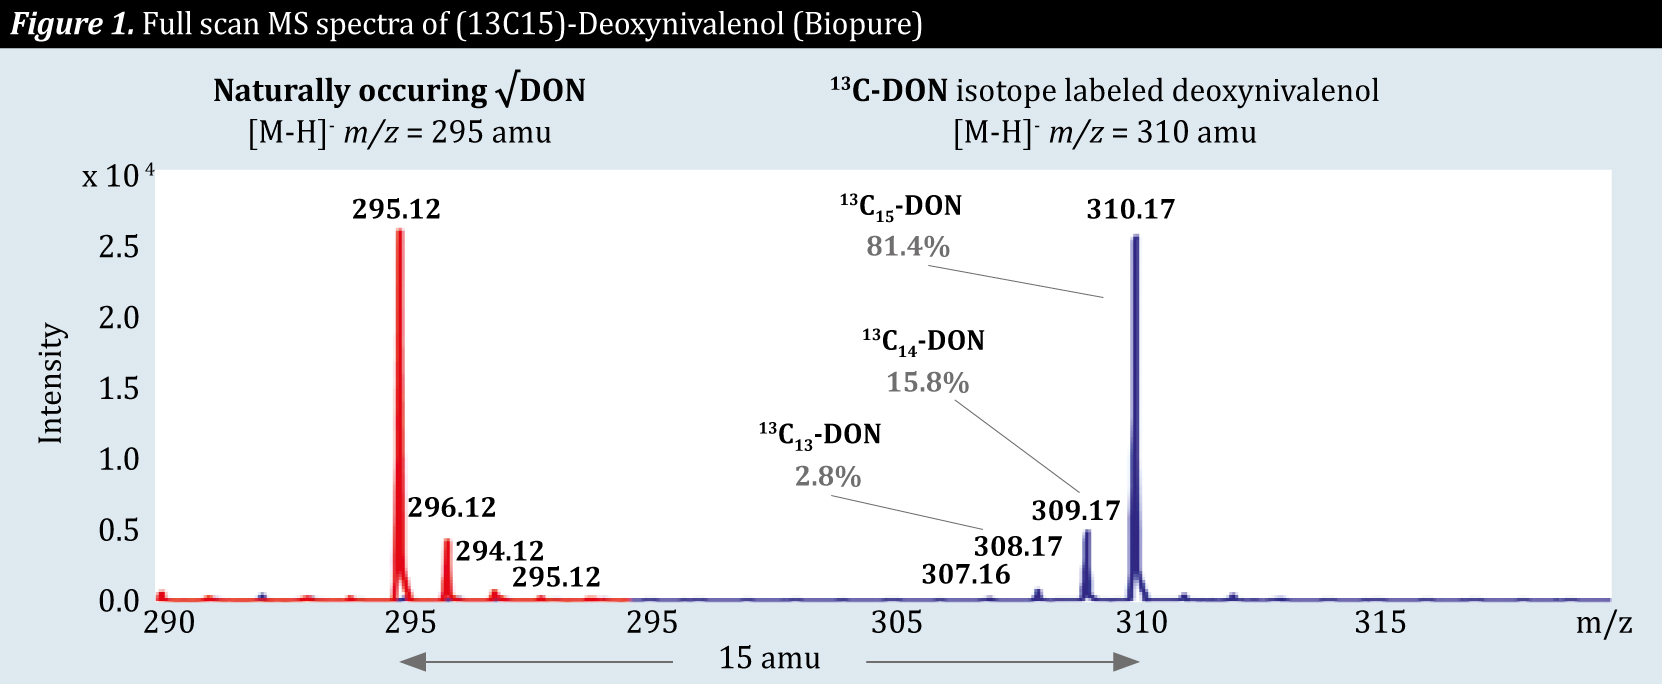 Figure 1. Full scan MS spectra of (13C15)-Deoxynivalenol (Biopure)